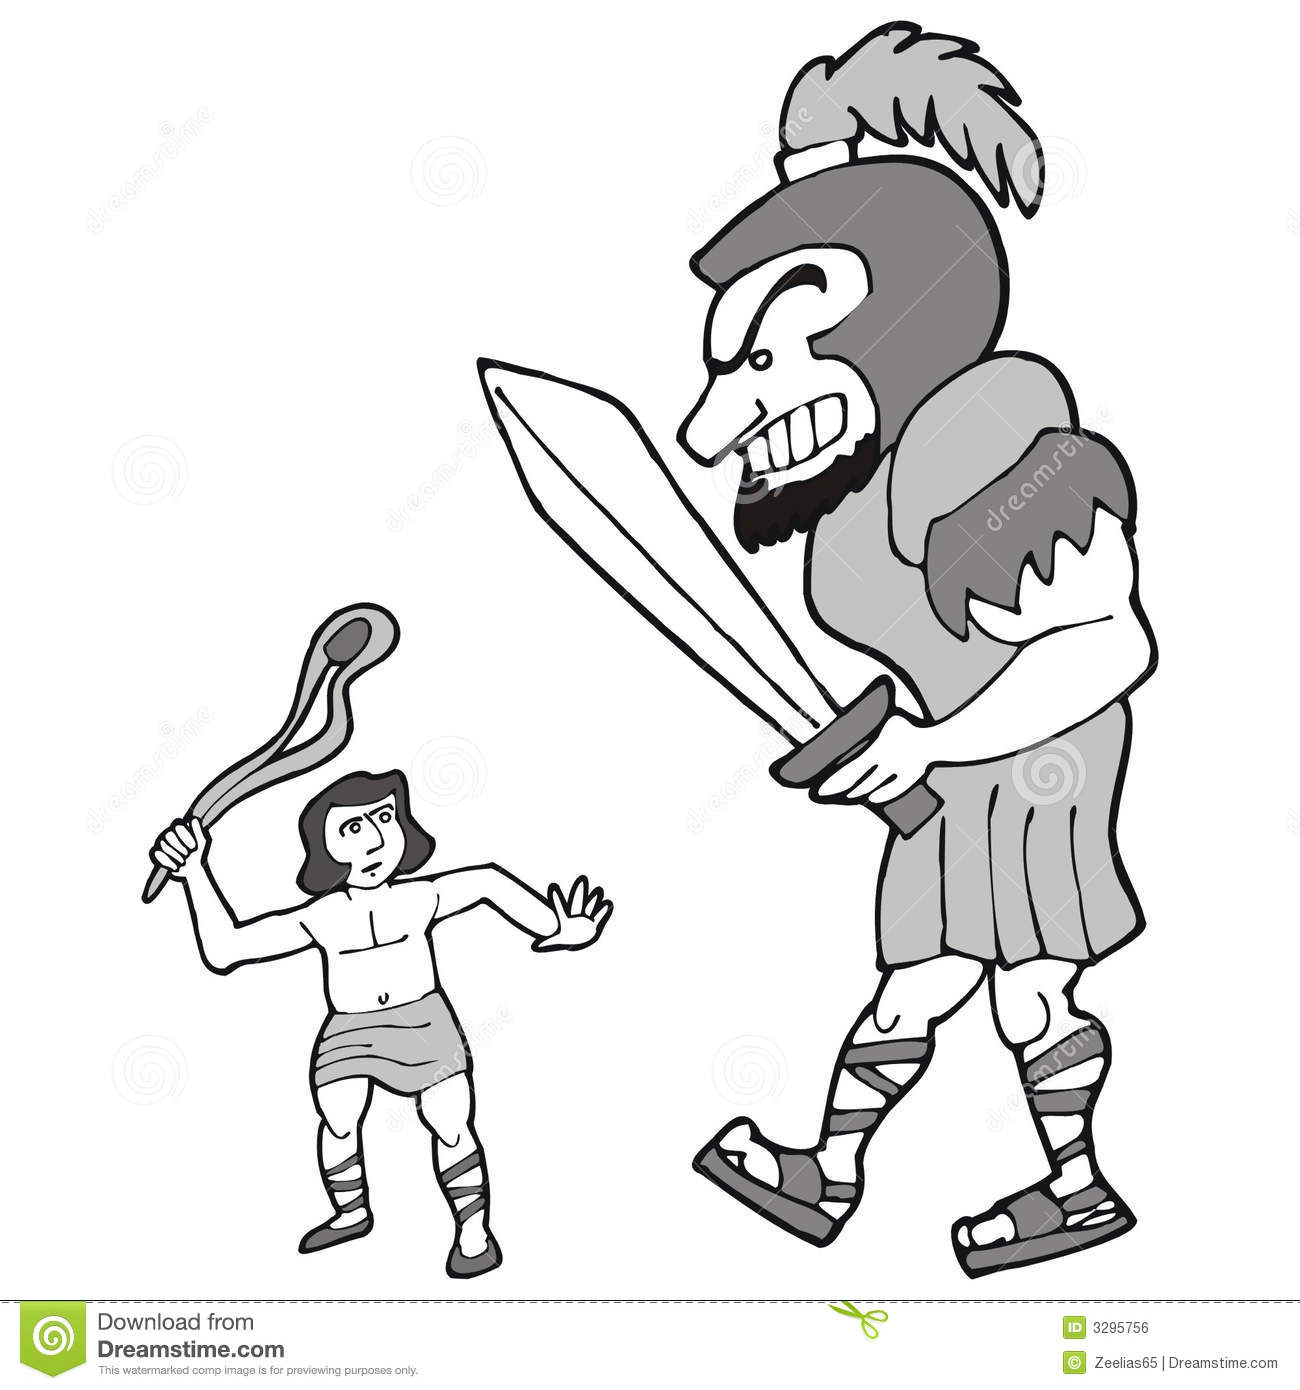 David And Goliath Royalty Free Stock Image.